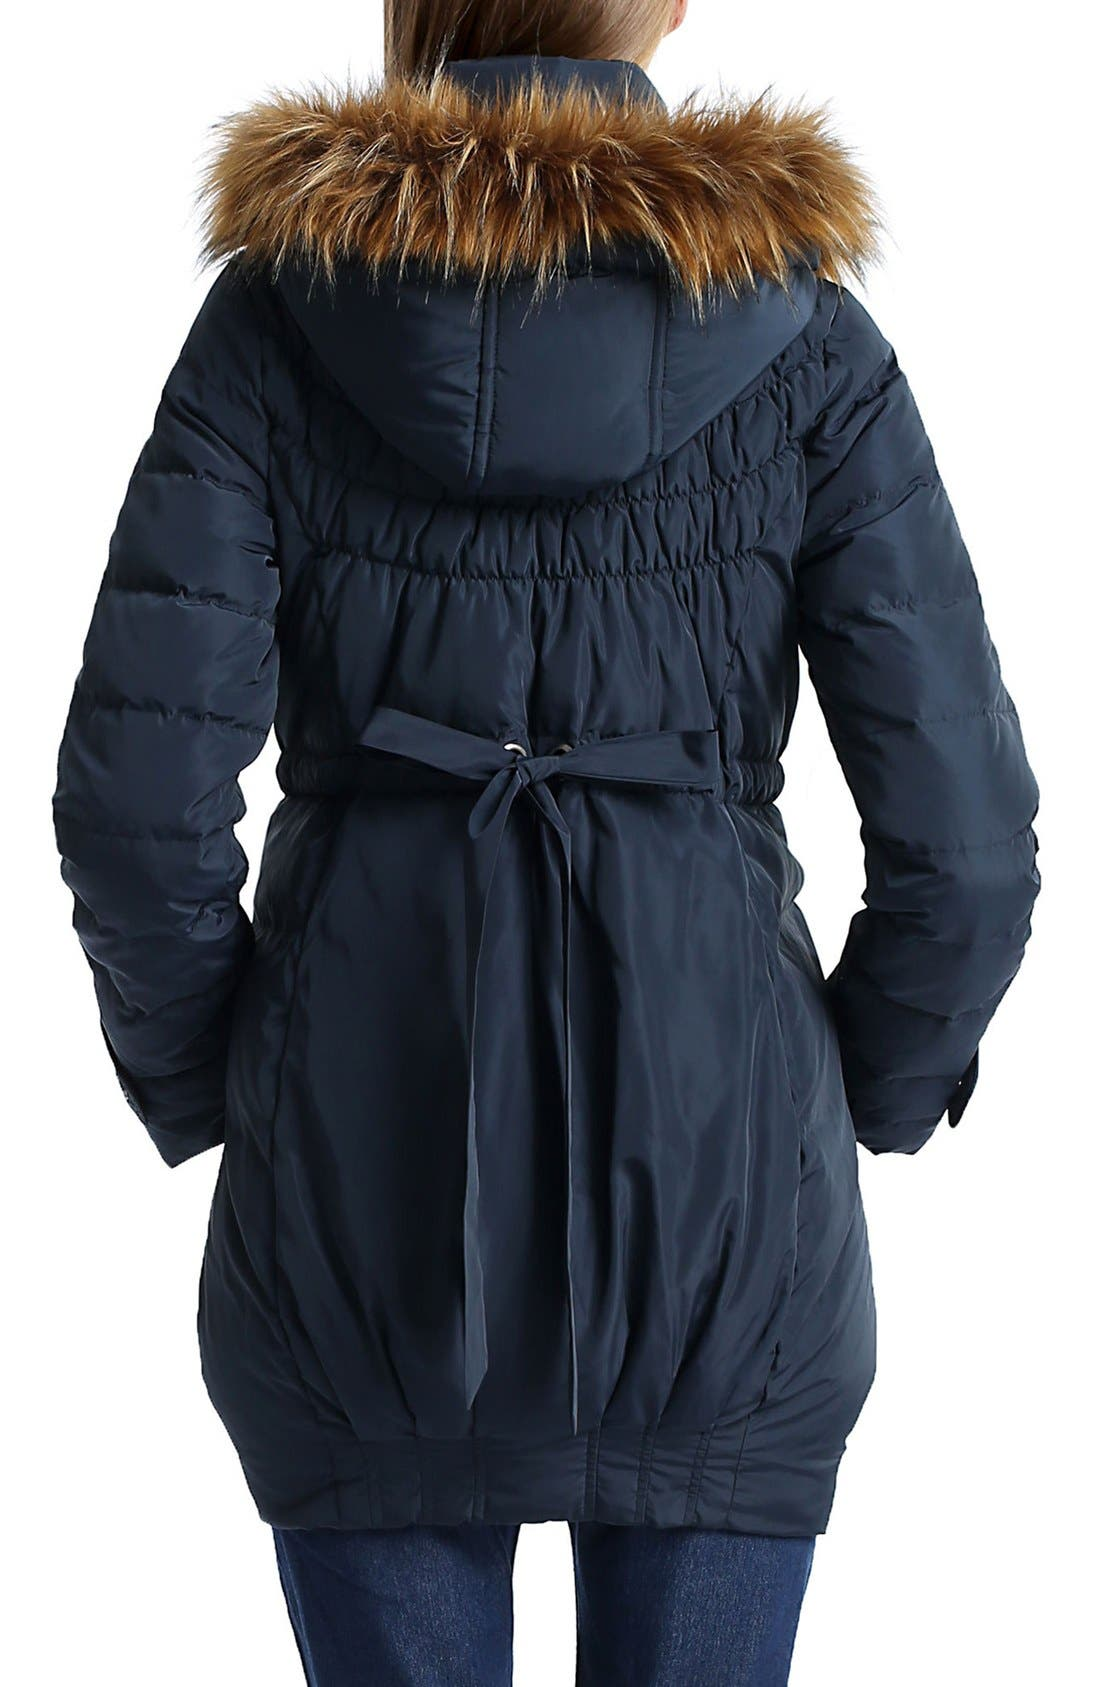 'Arlo' Water Resistant Down Maternity Parka with Baby Carrier Cover Inset,                             Alternate thumbnail 2, color,                             Navy